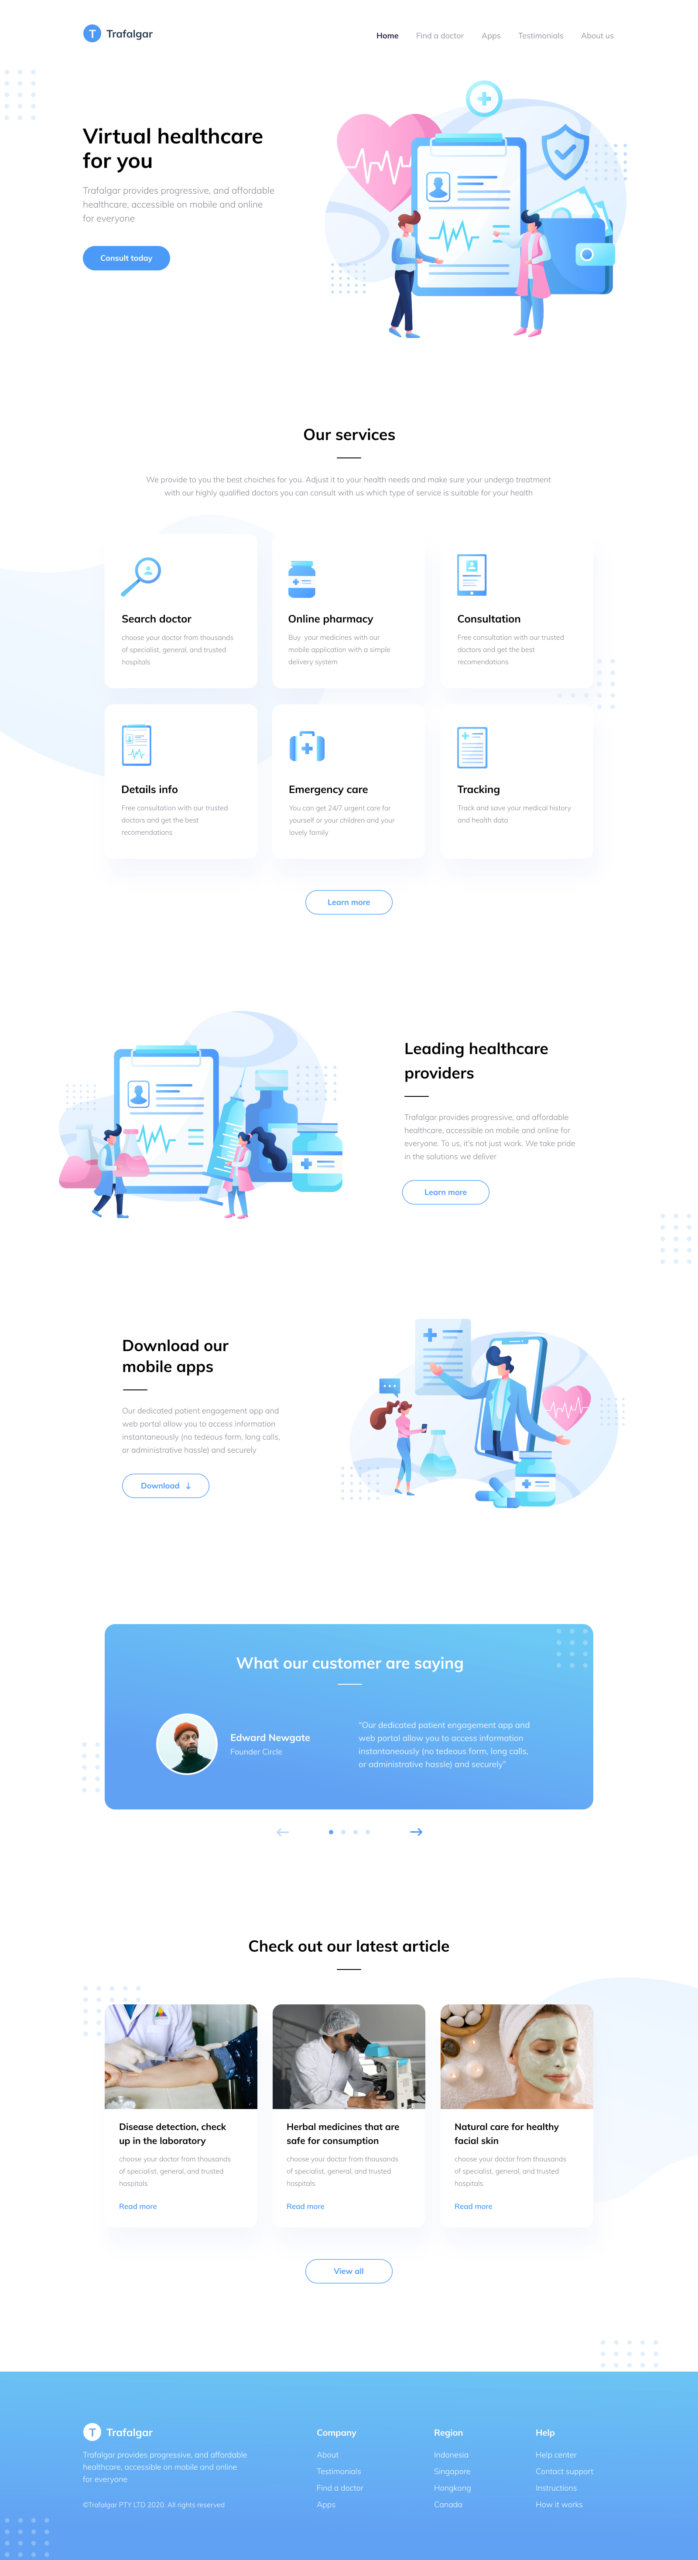 Trafalgar Landing Page for Figma from UIGarage